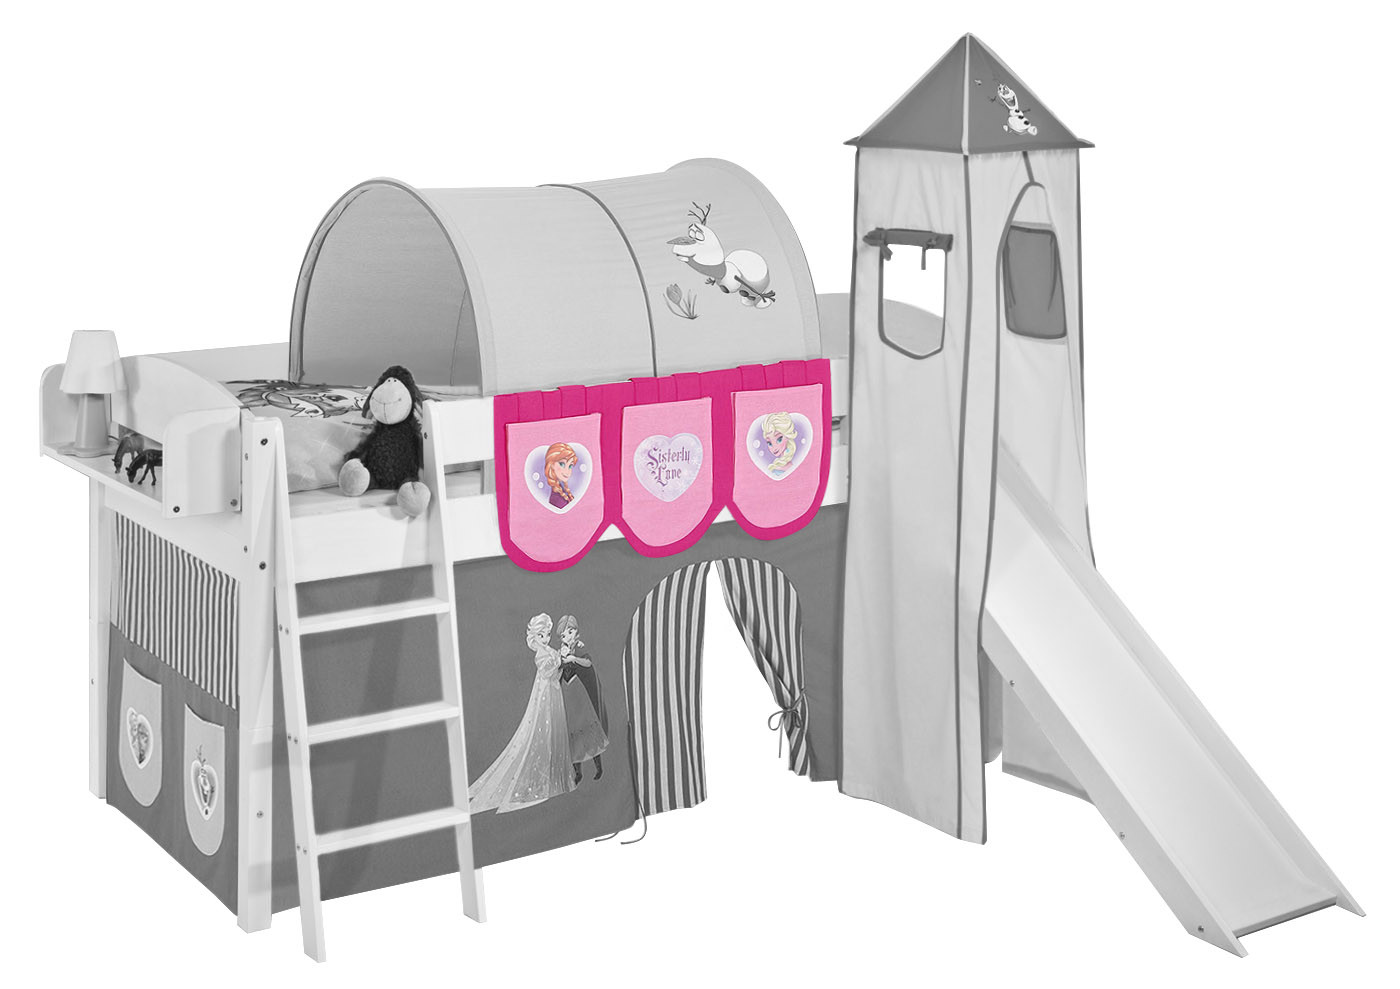 Sleeper Bunk Pockets Beds For SleeperHigh Mid And Bed doeCxWrB